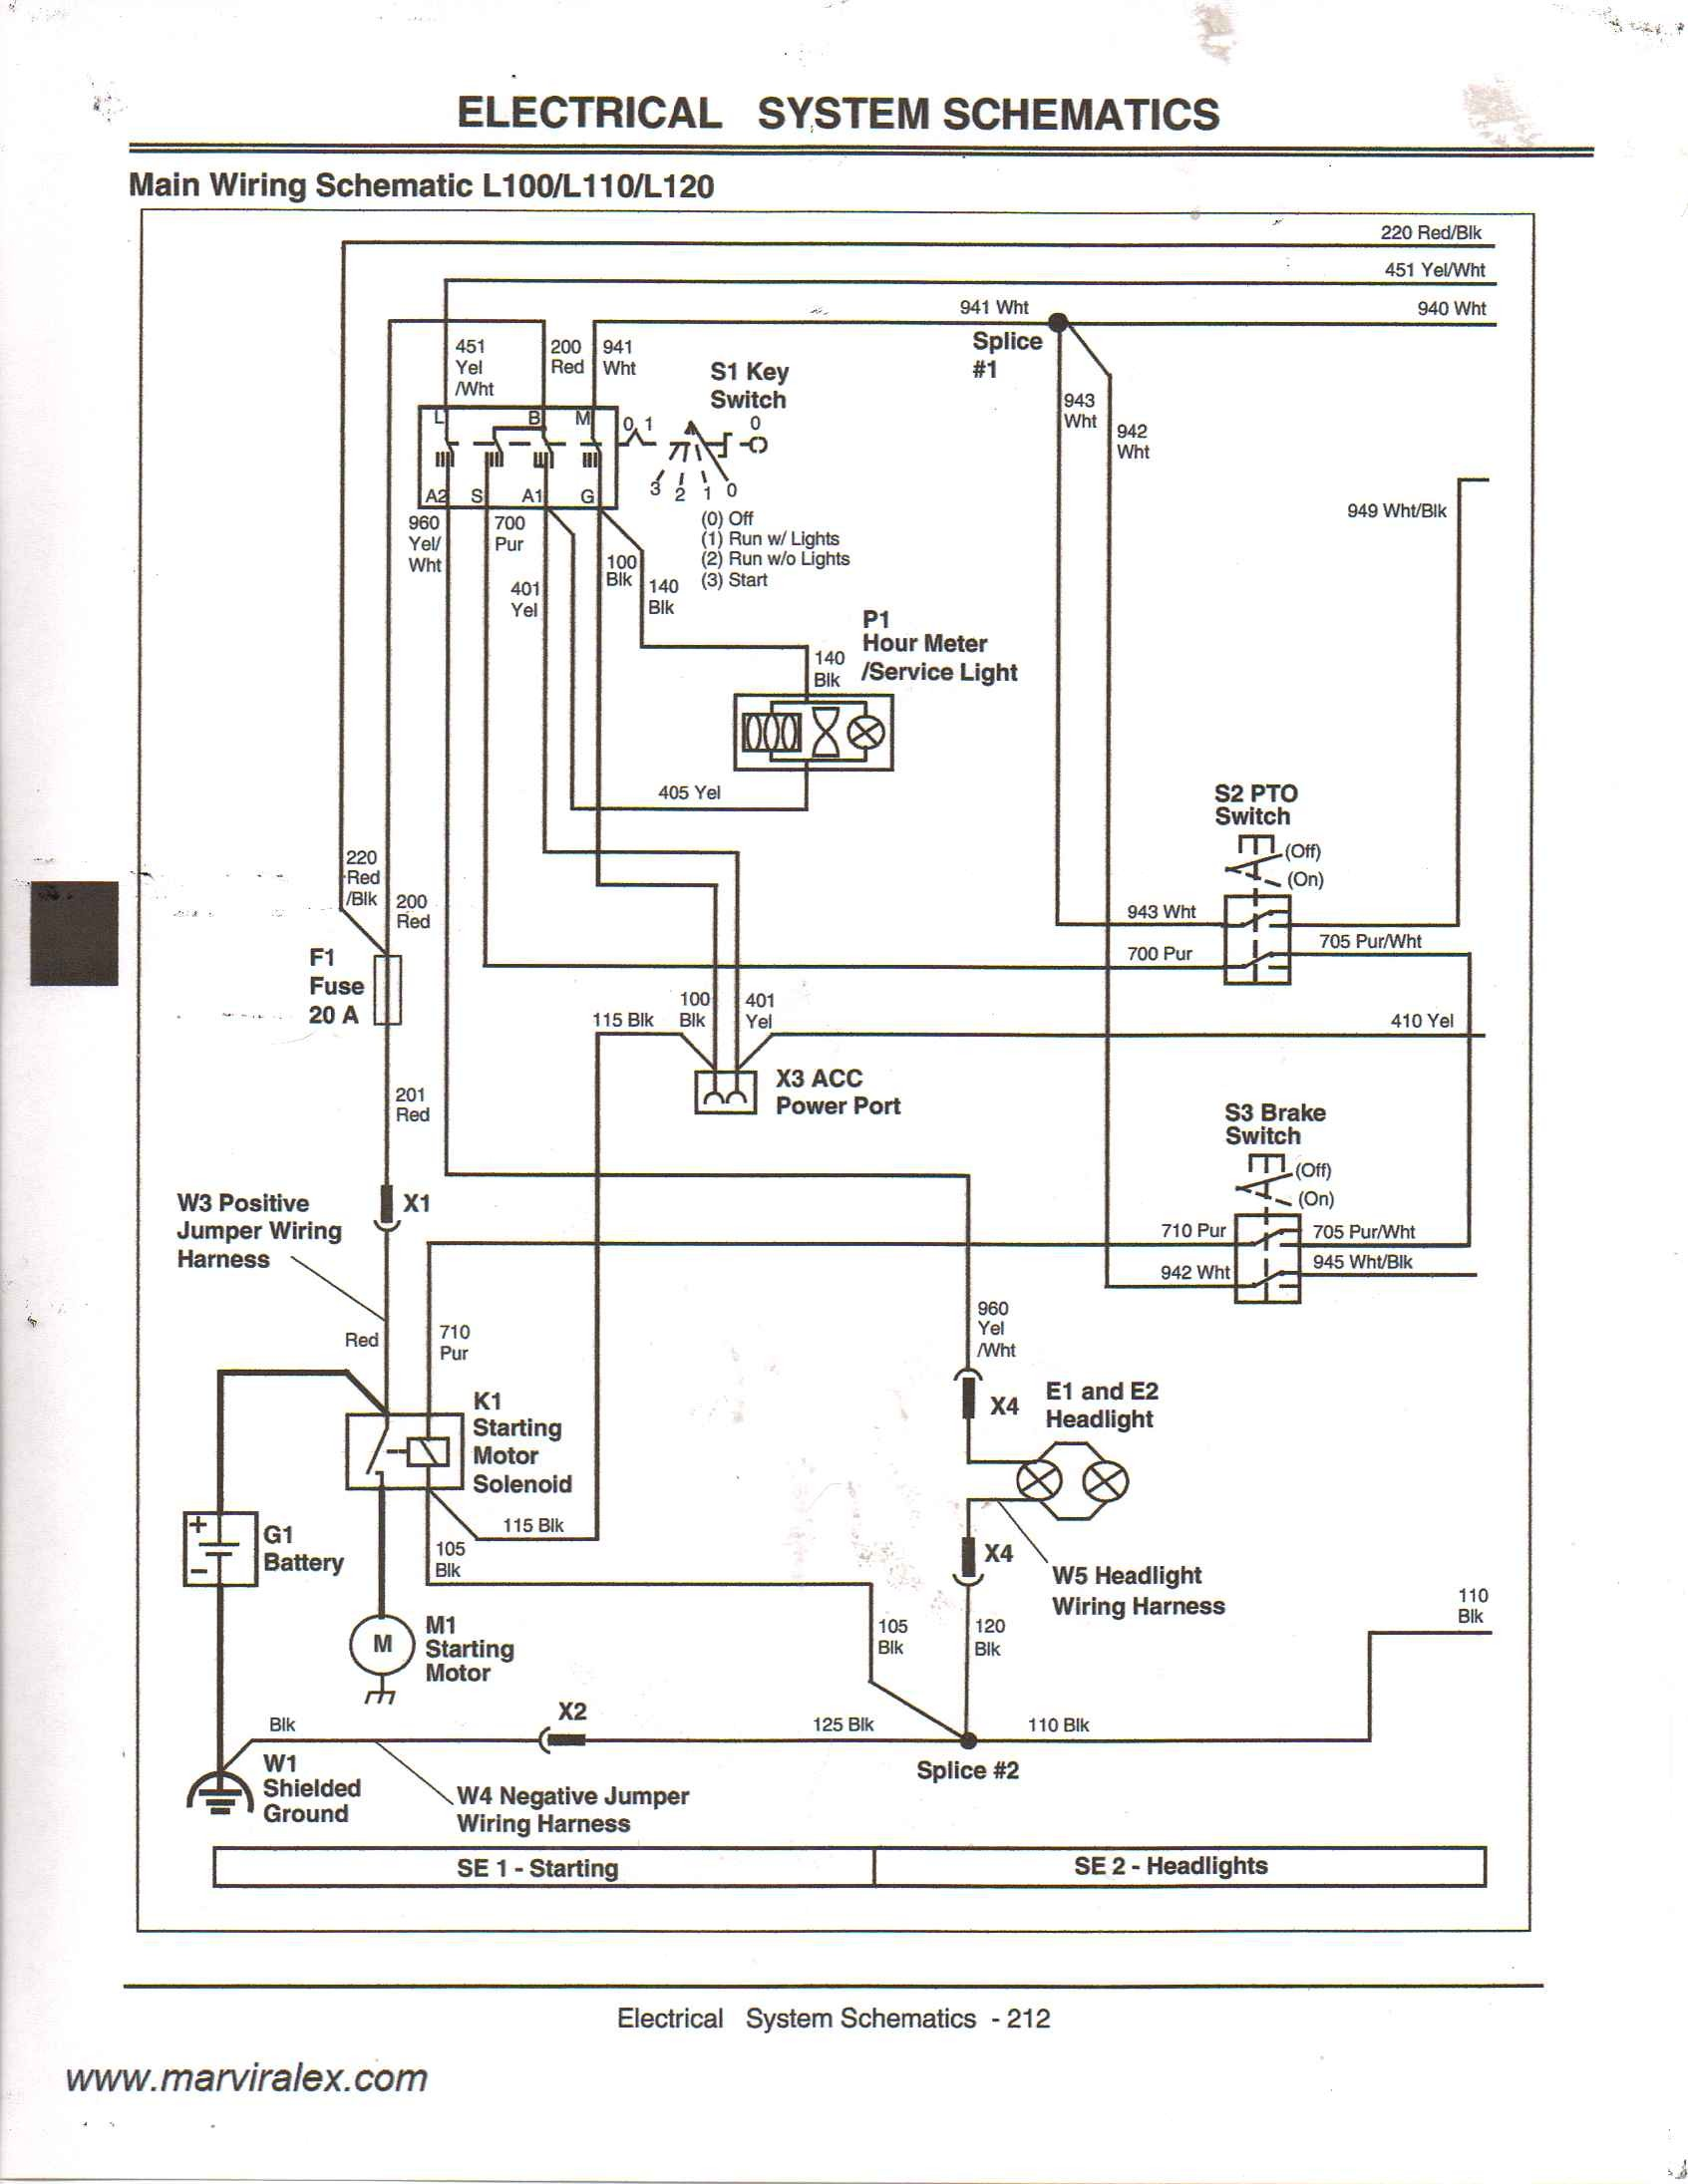 Wiring Diagram 318 John Deere Cb 4290] for John Deere 1050 Tractor Wiring Diagram Of Wiring Diagram 318 John Deere